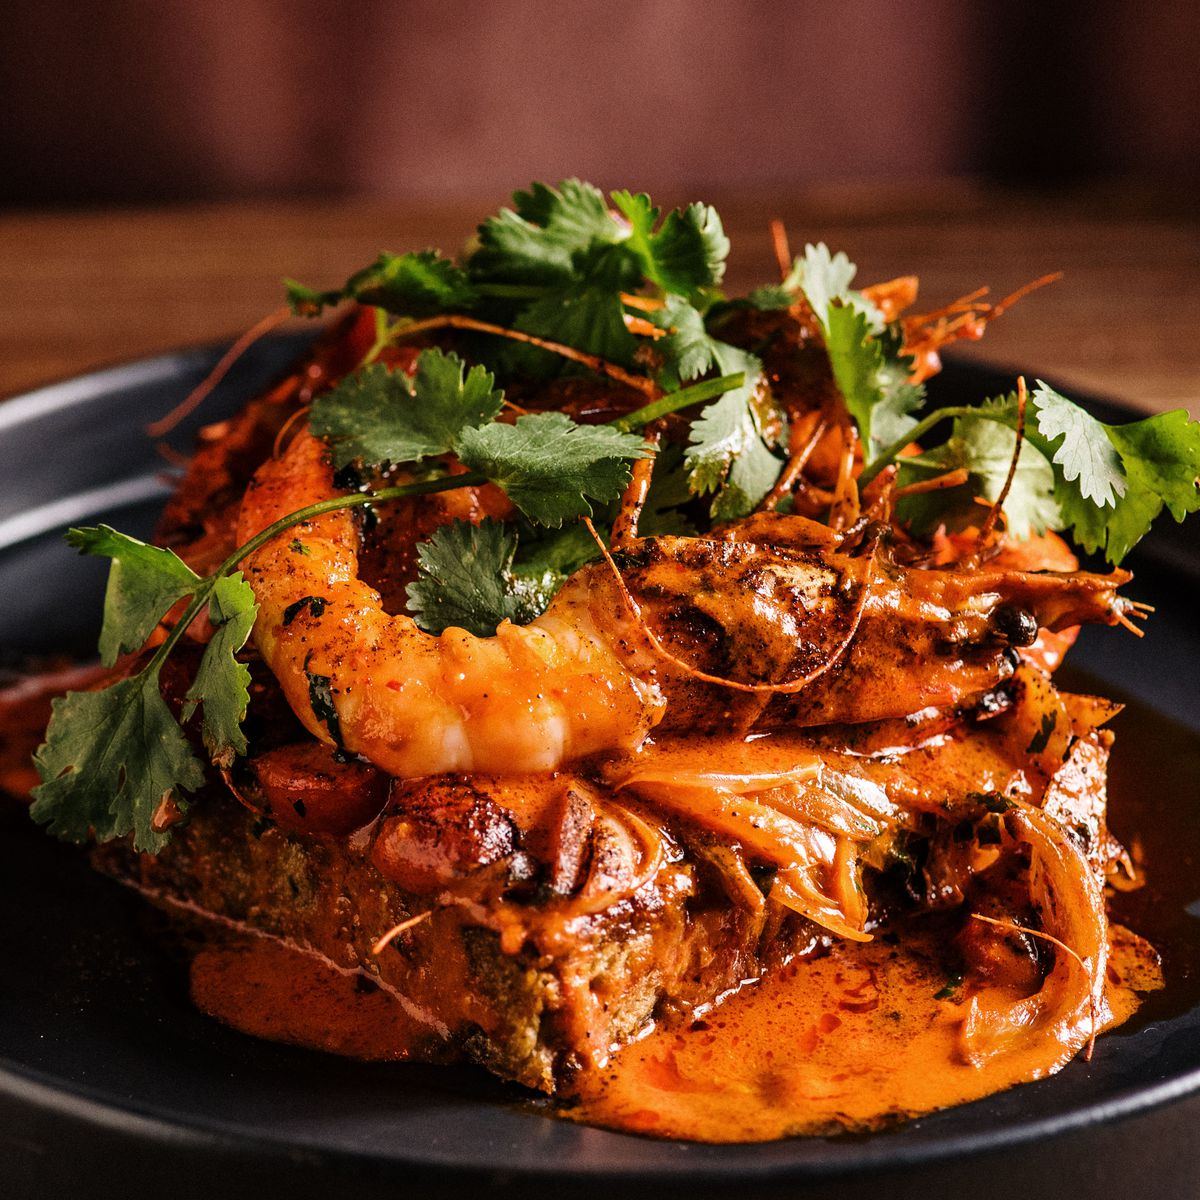 Black bowl of heads-on jumbo shrimp swimming in a spiced red tomato sauce